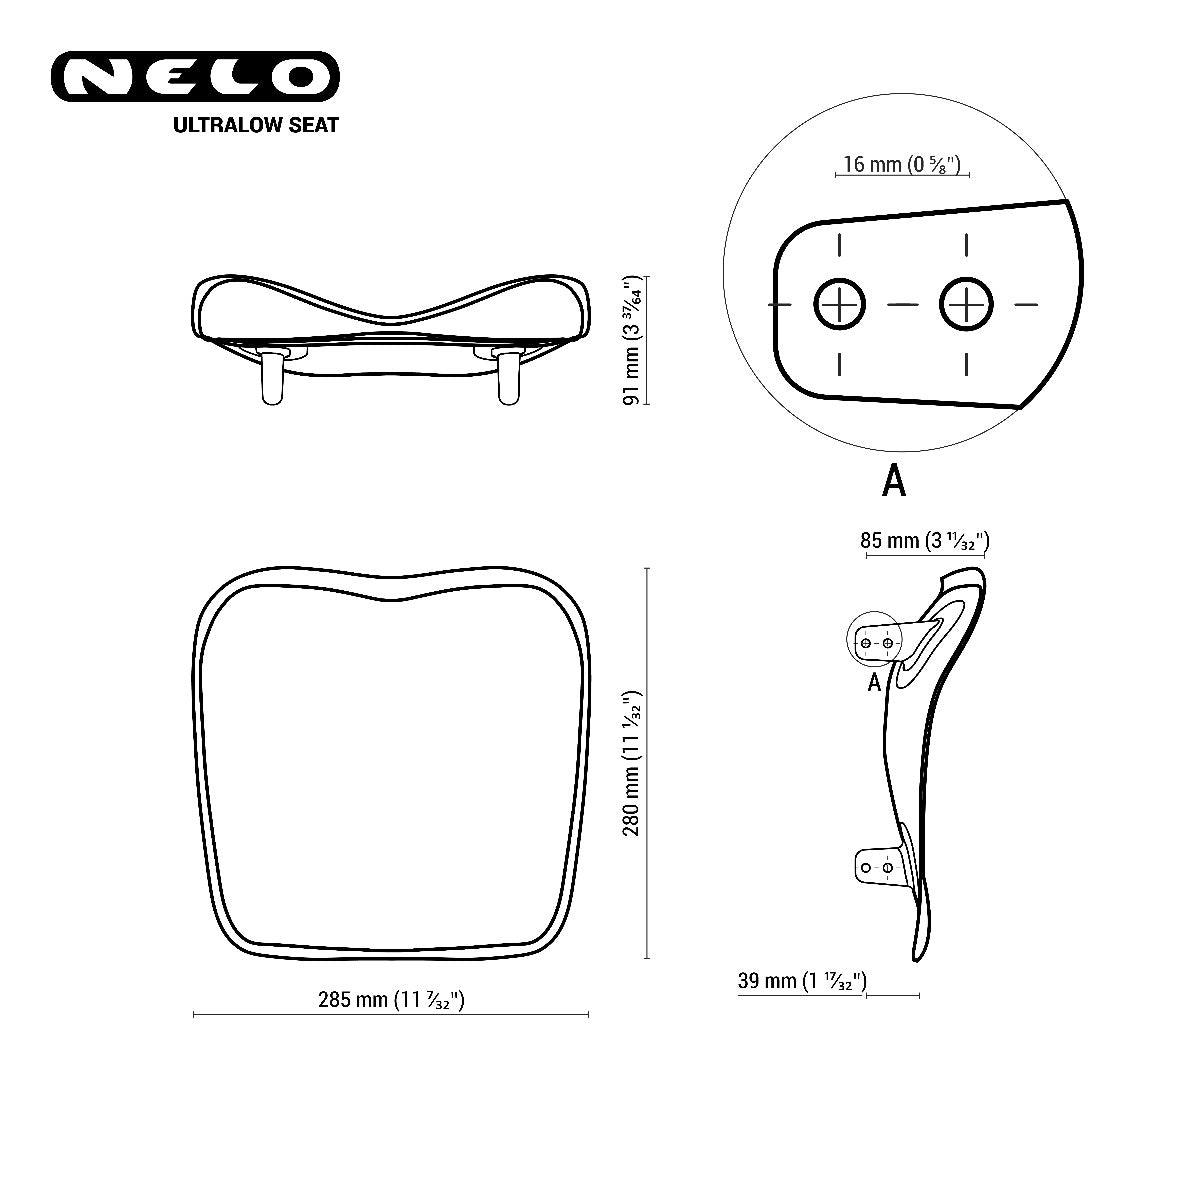 Nelo Ultra low seat technical drawing